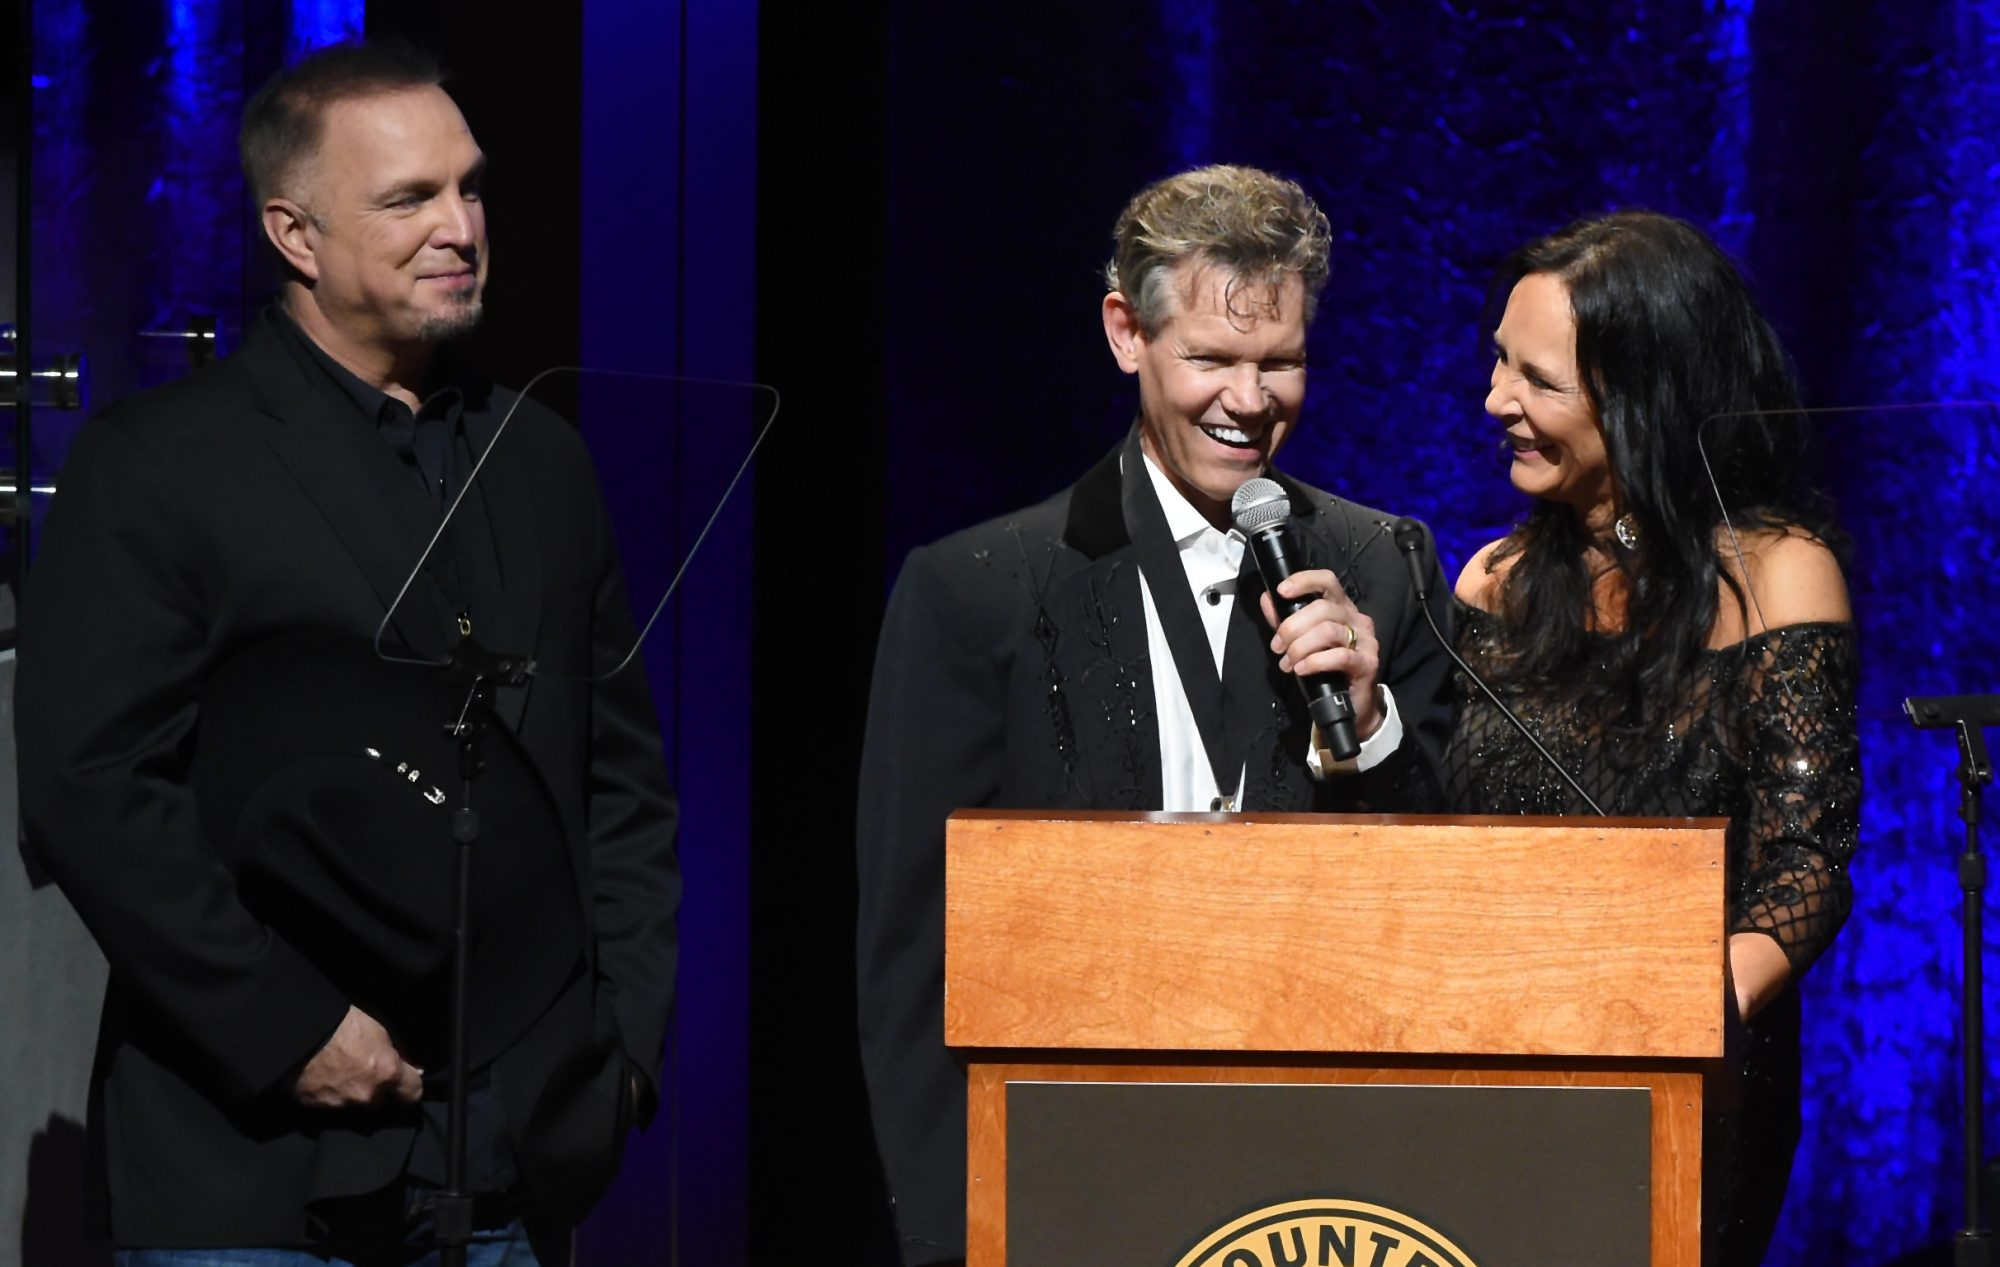 NASHVILLE, TN - OCTOBER 16:  Randy Travis sings 'Amazing Grace' with wife Mary Davis (R) and Garth Brooks (L) during the 2016 Medallion Ceremony at Country Music Hall of Fame and Museum on October 16, 2016 in Nashville, Tennessee.  (Photo by Rick Diamond/Getty Images for Country Music Hall of Fame & Museum)